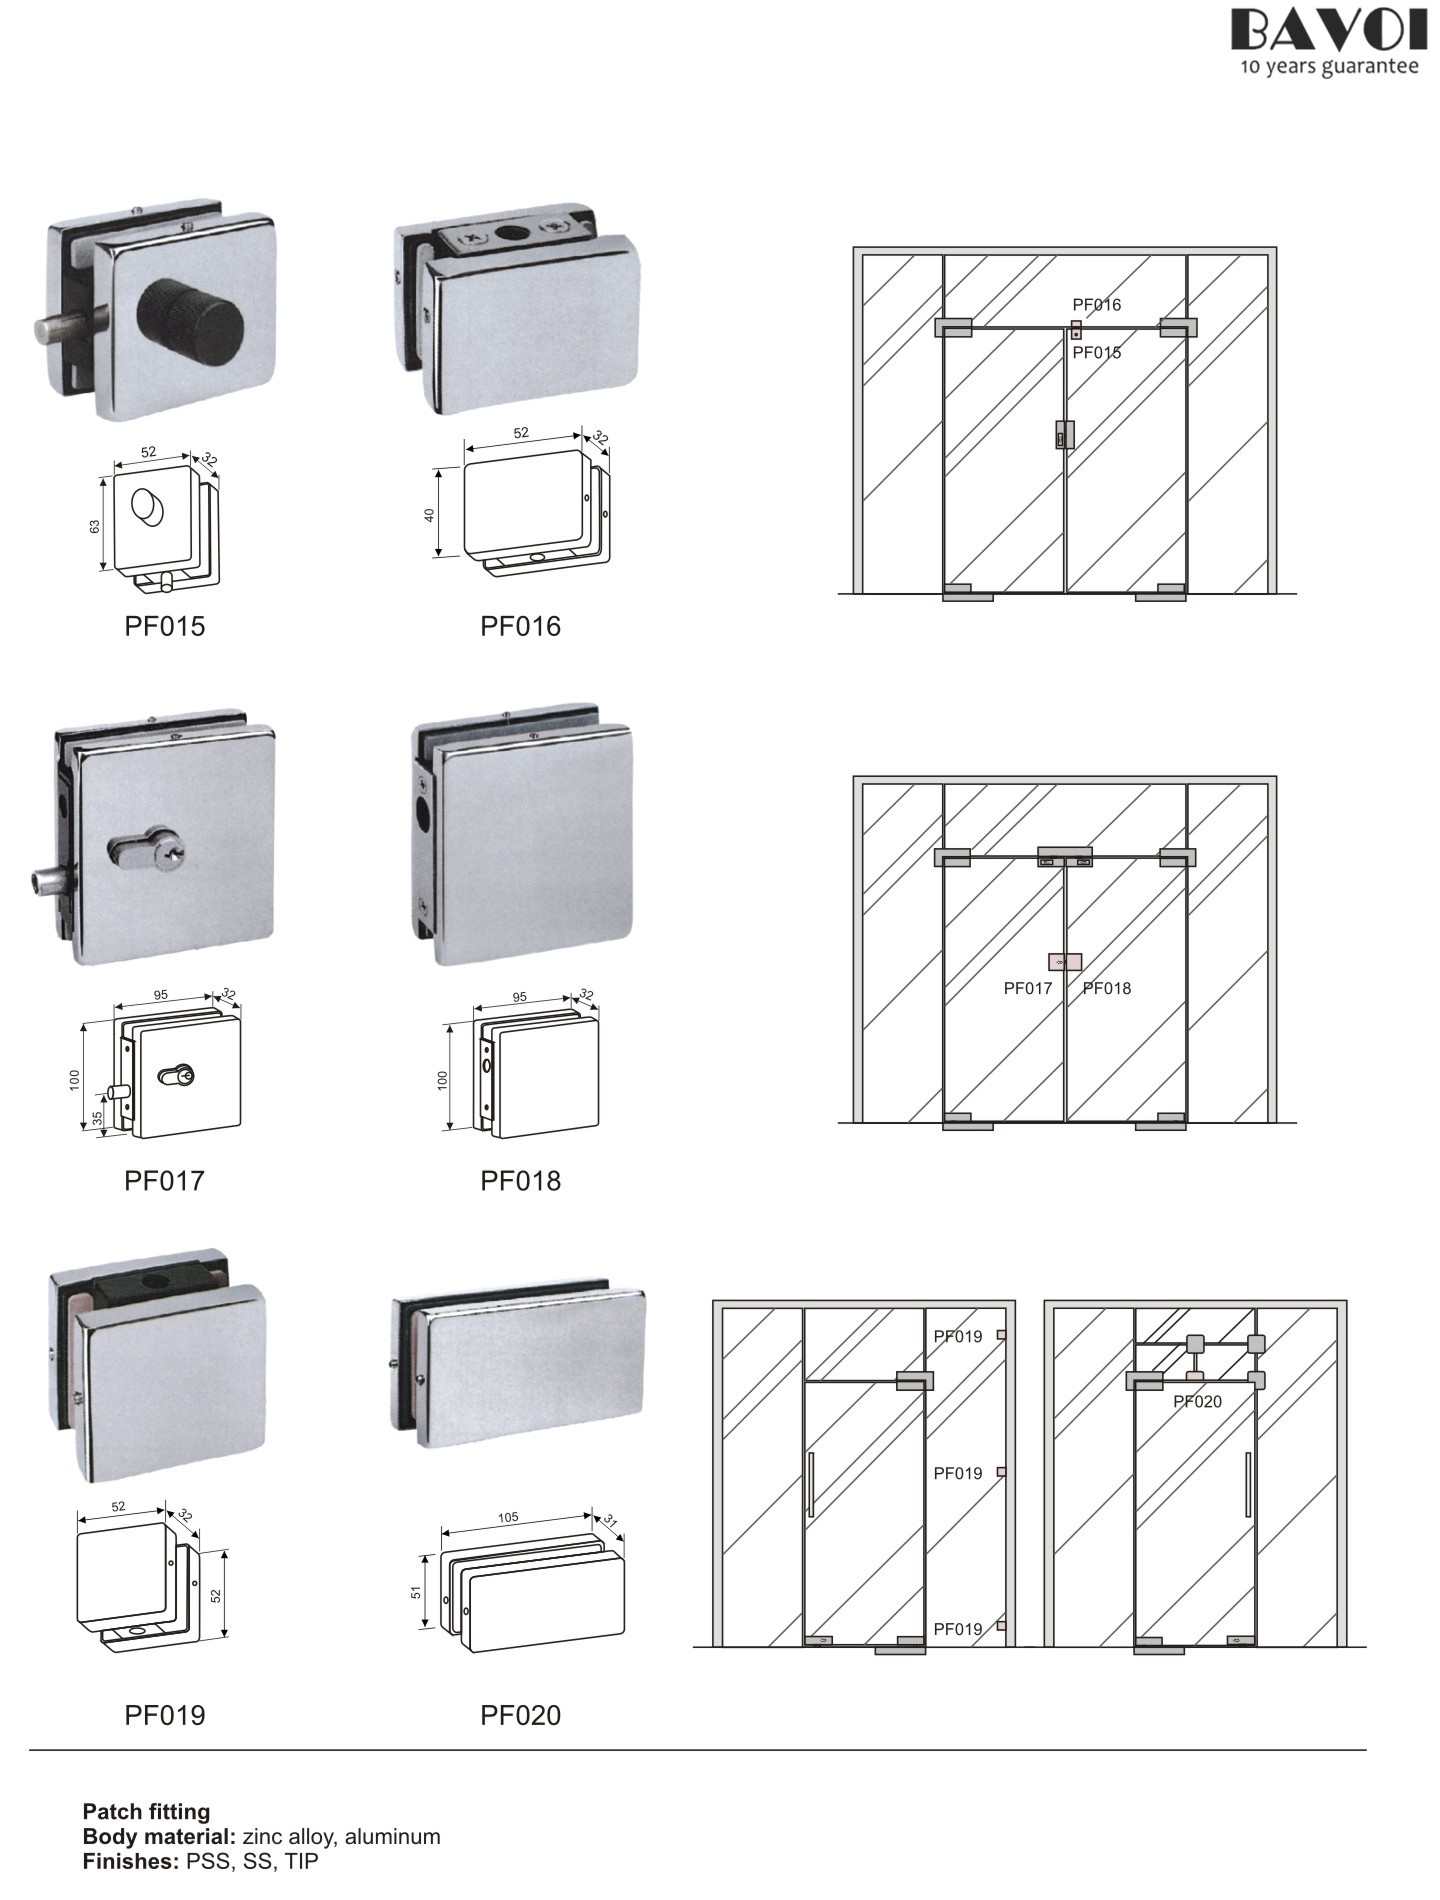 Glass Door Patch Fitting Supplies Pf015 016 017 018 019 020